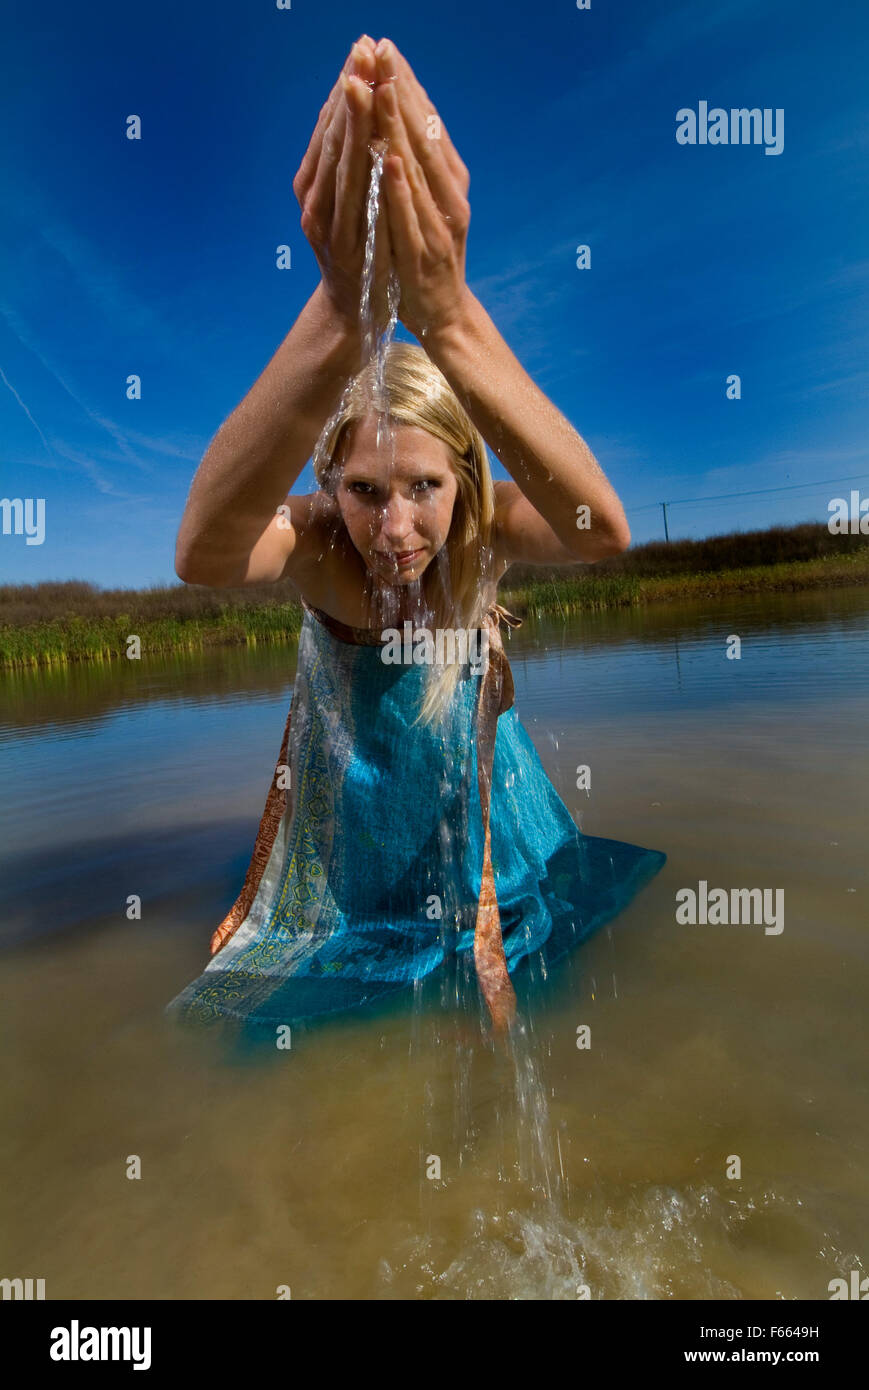 A blond haired woman in water outdoors lifting water up and out of her hands. Abundance concept, great blue skies, - Stock Image